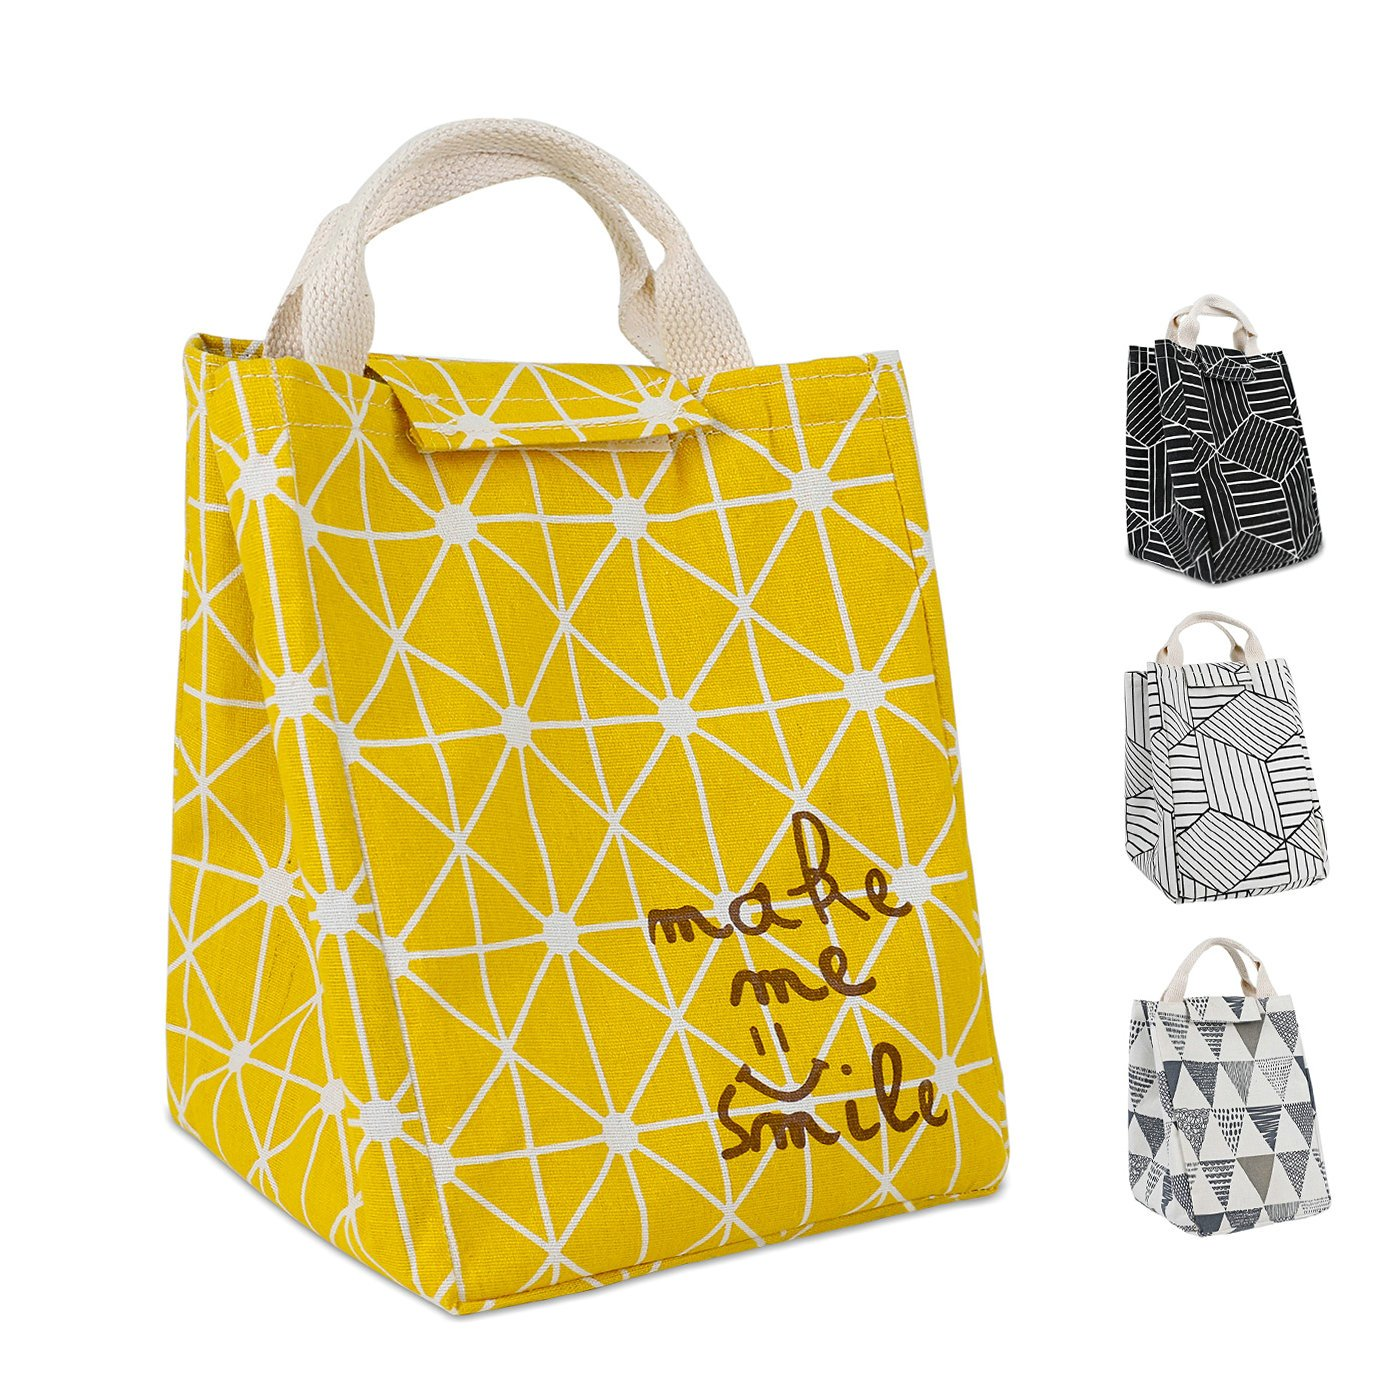 HOMESPON Reusable Lunch Bags Printed Canvas Fabric with Insulated Waterproof Aluminum Foil, Lunch Box for Women, Kids, Students (Rhombus Pattern-Yellow)